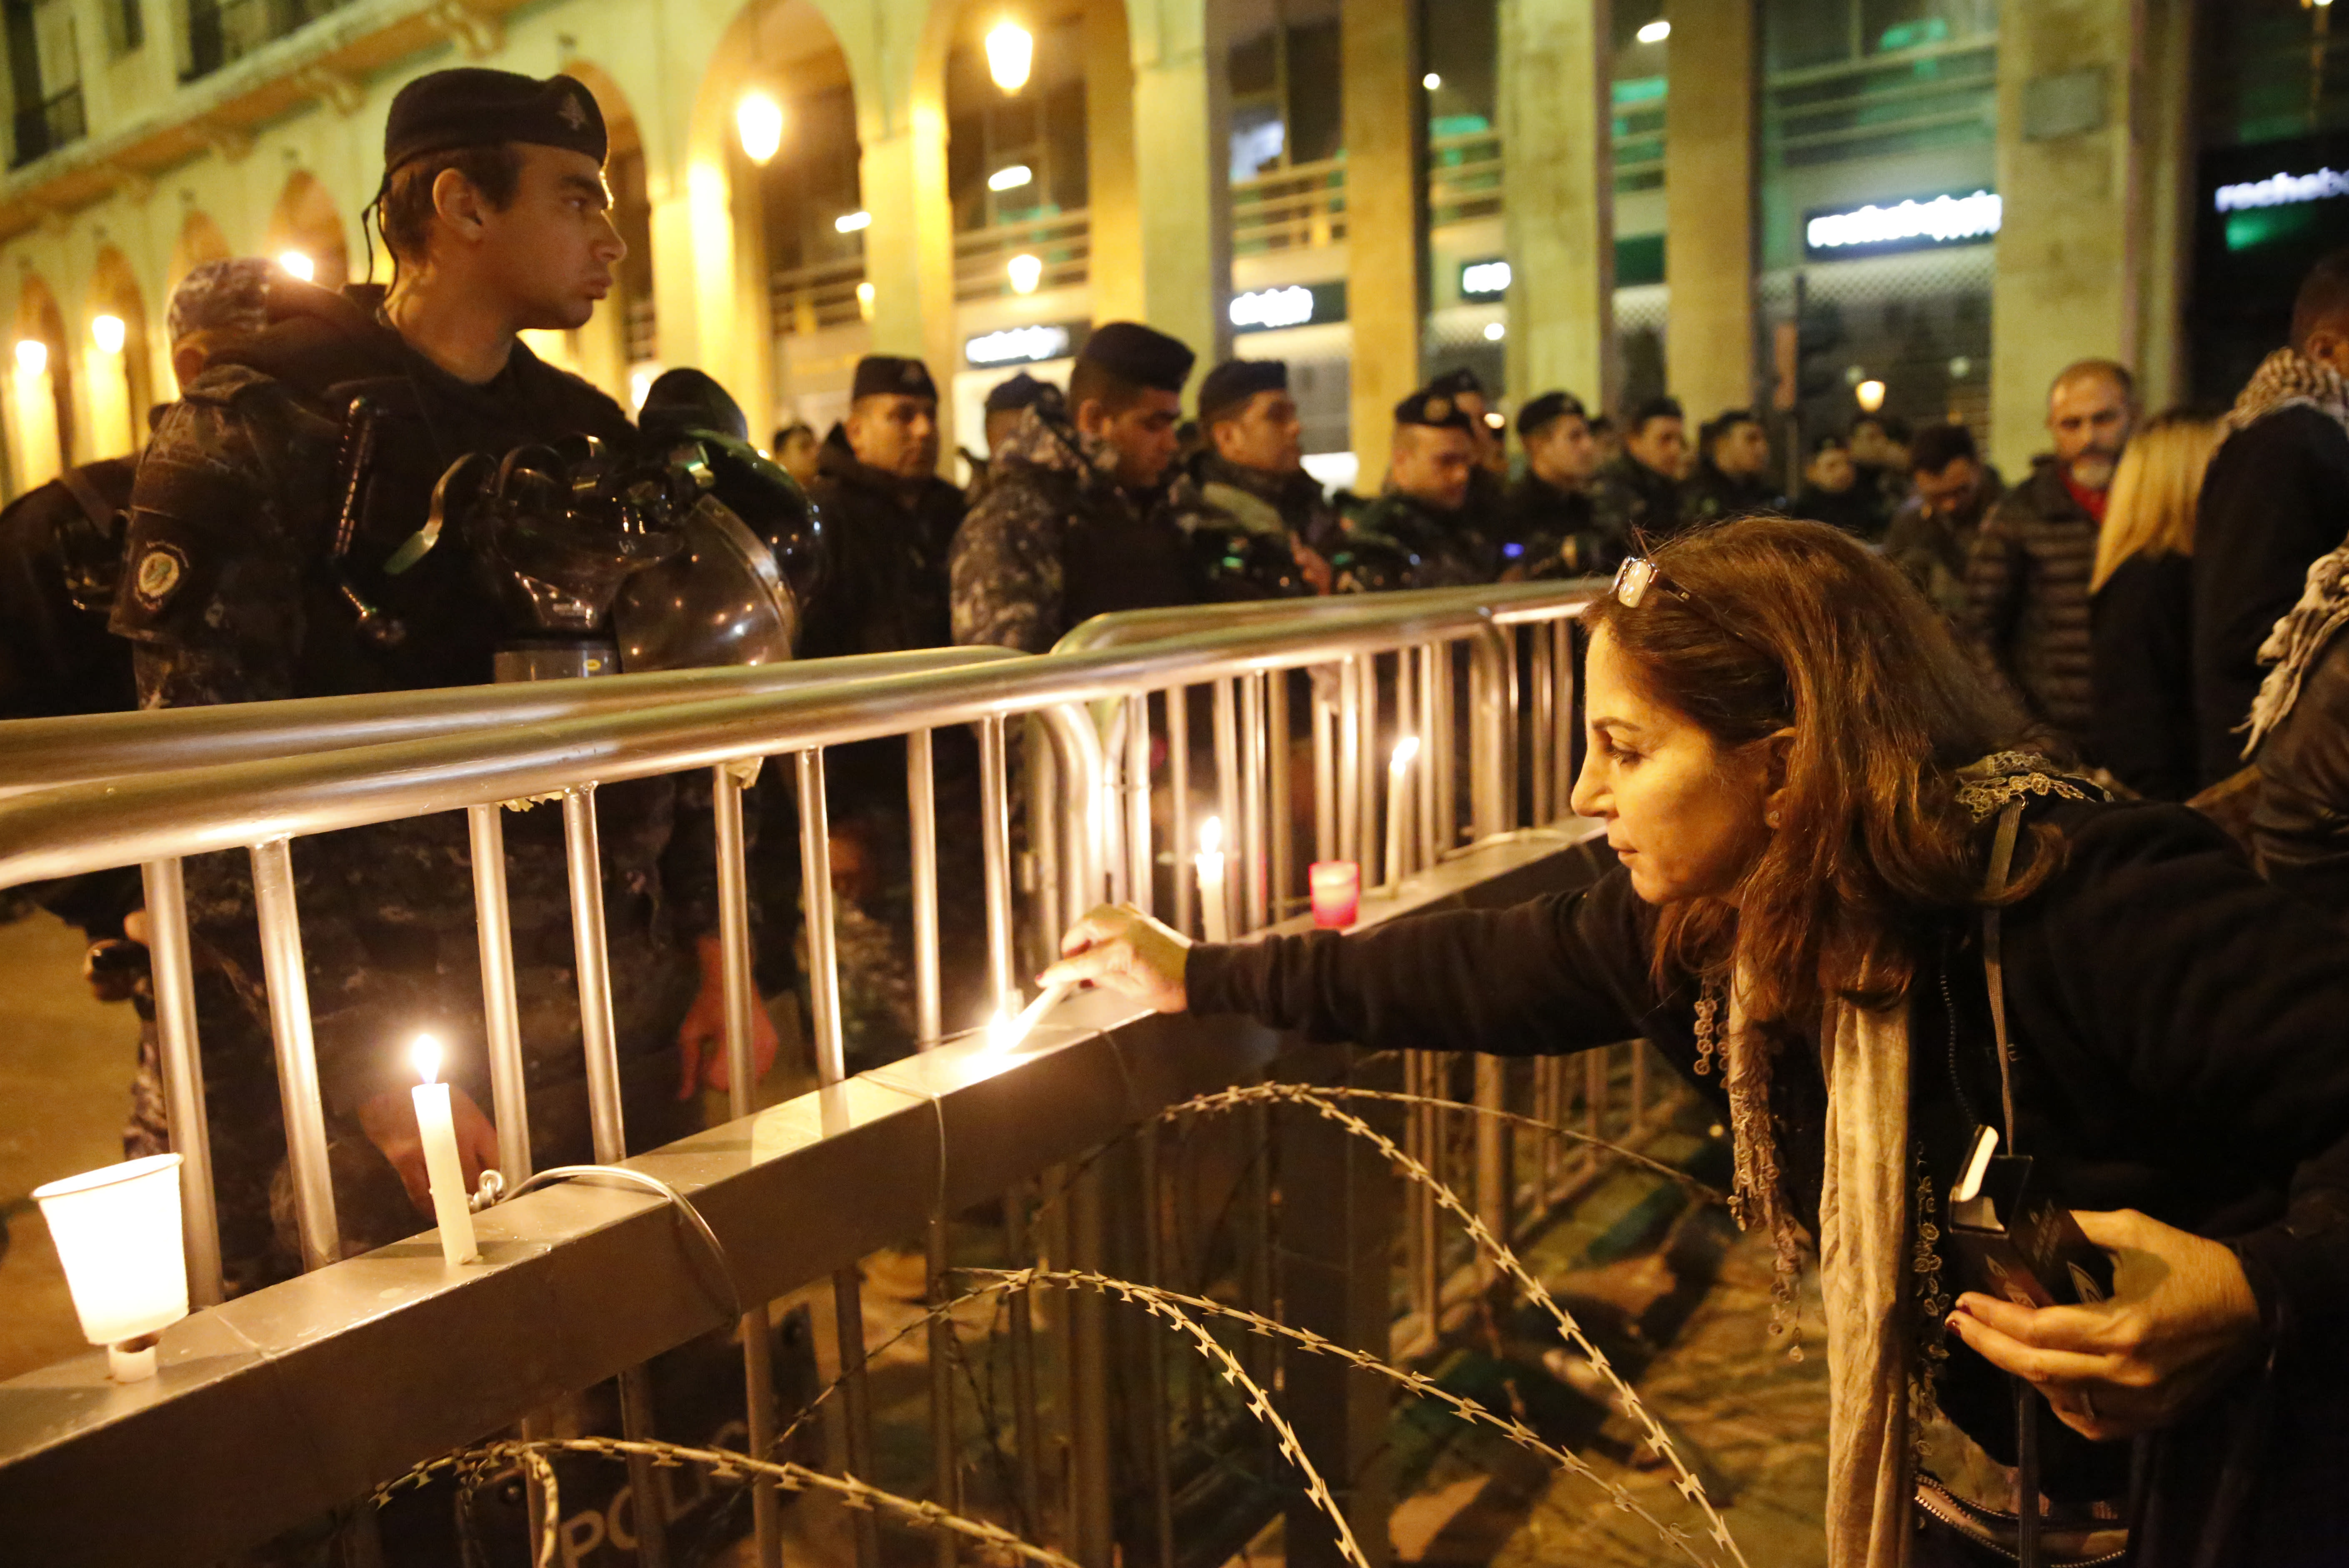 An anti-government protester lights a candle in front the riot police, during ongoing protests against the ruling elite of corruption and financial crisis, in downtown Beirut, Lebanon, Wednesday, Dec. 18, 2019. Lebanon's caretaker prime minister said Wednesday he's no longer a candidate for the post, eliminating himself from consideration on the eve of scheduled consultations between the president and parliamentary blocs for naming a new premier. (AP Photo/Hussein Malla)